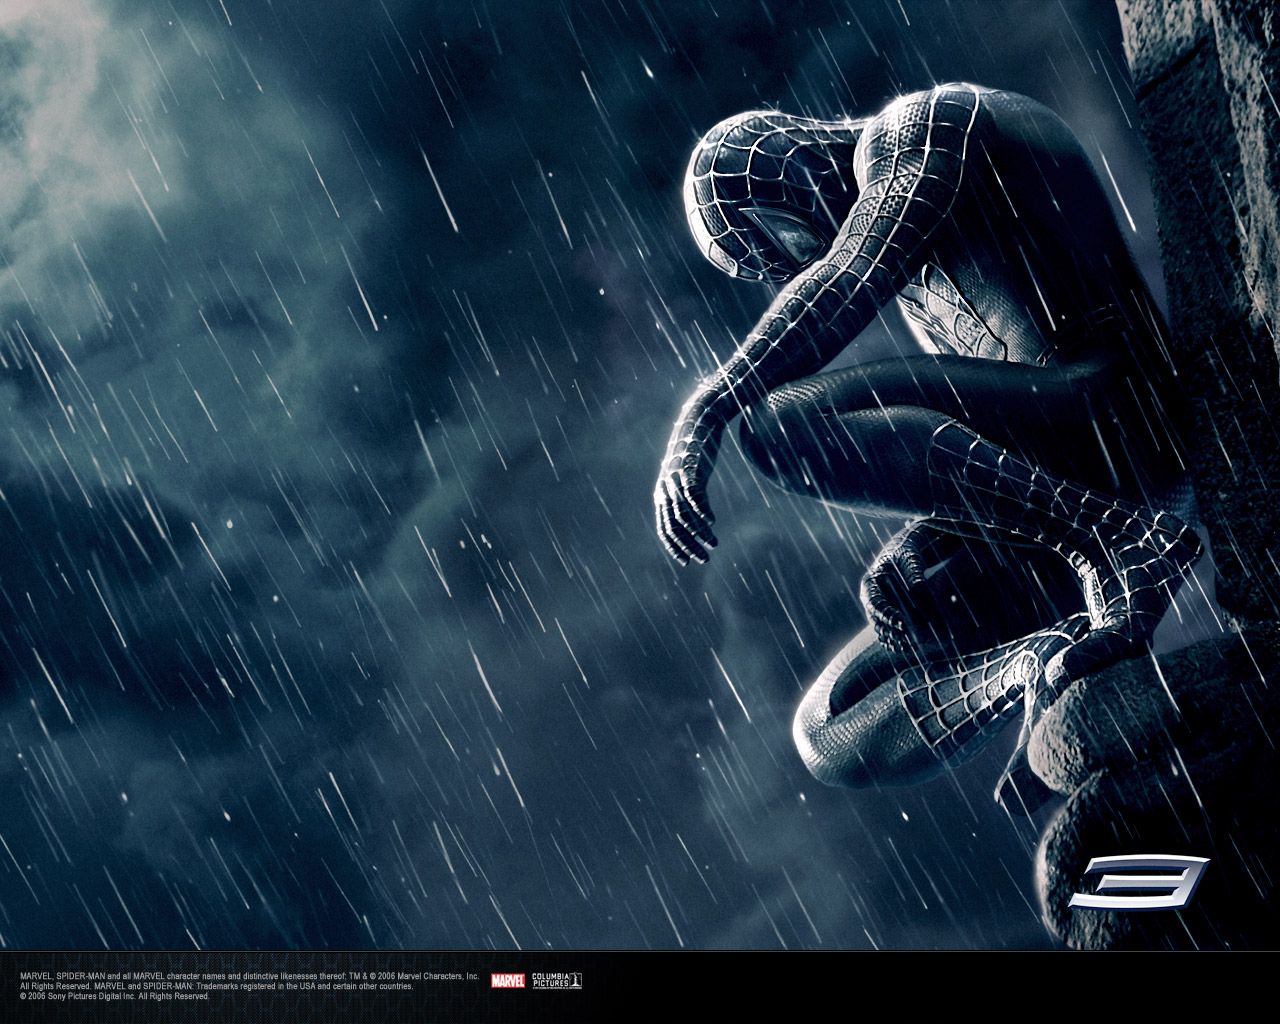 Download wallpapers Spiderman movie wallpapers 1280x1024